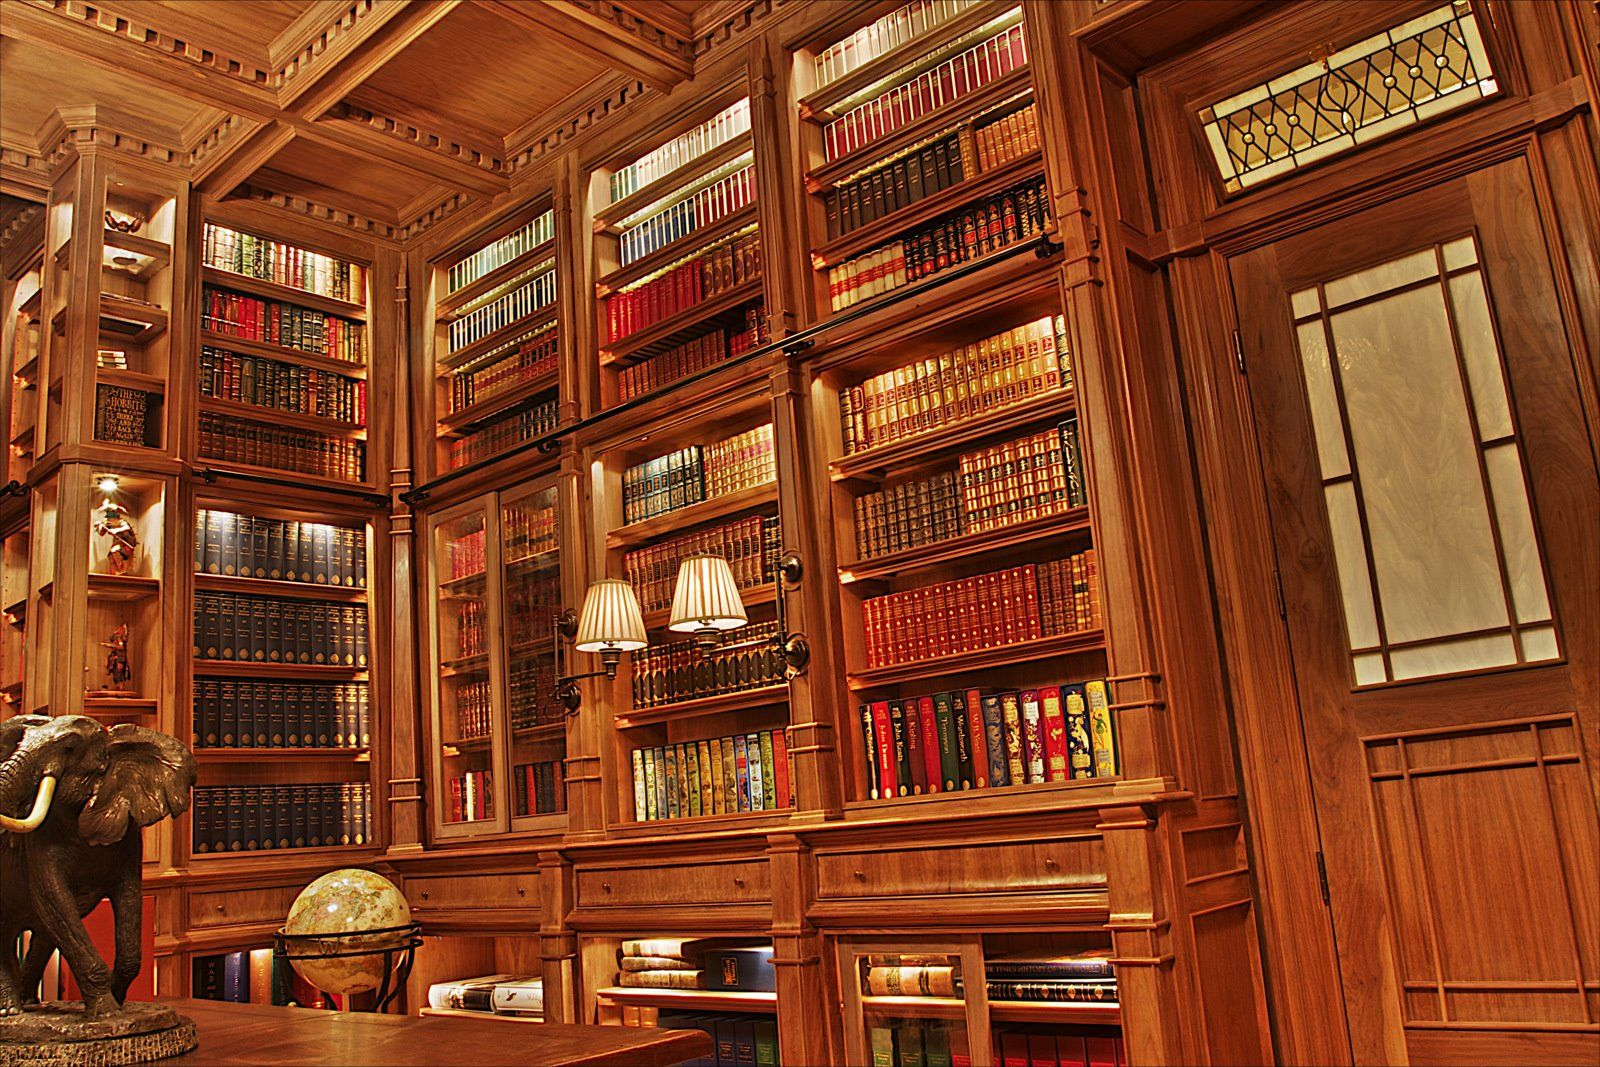 Law library wallpaper google search in the midst of conflict pinterest shelves library - Home design book ...